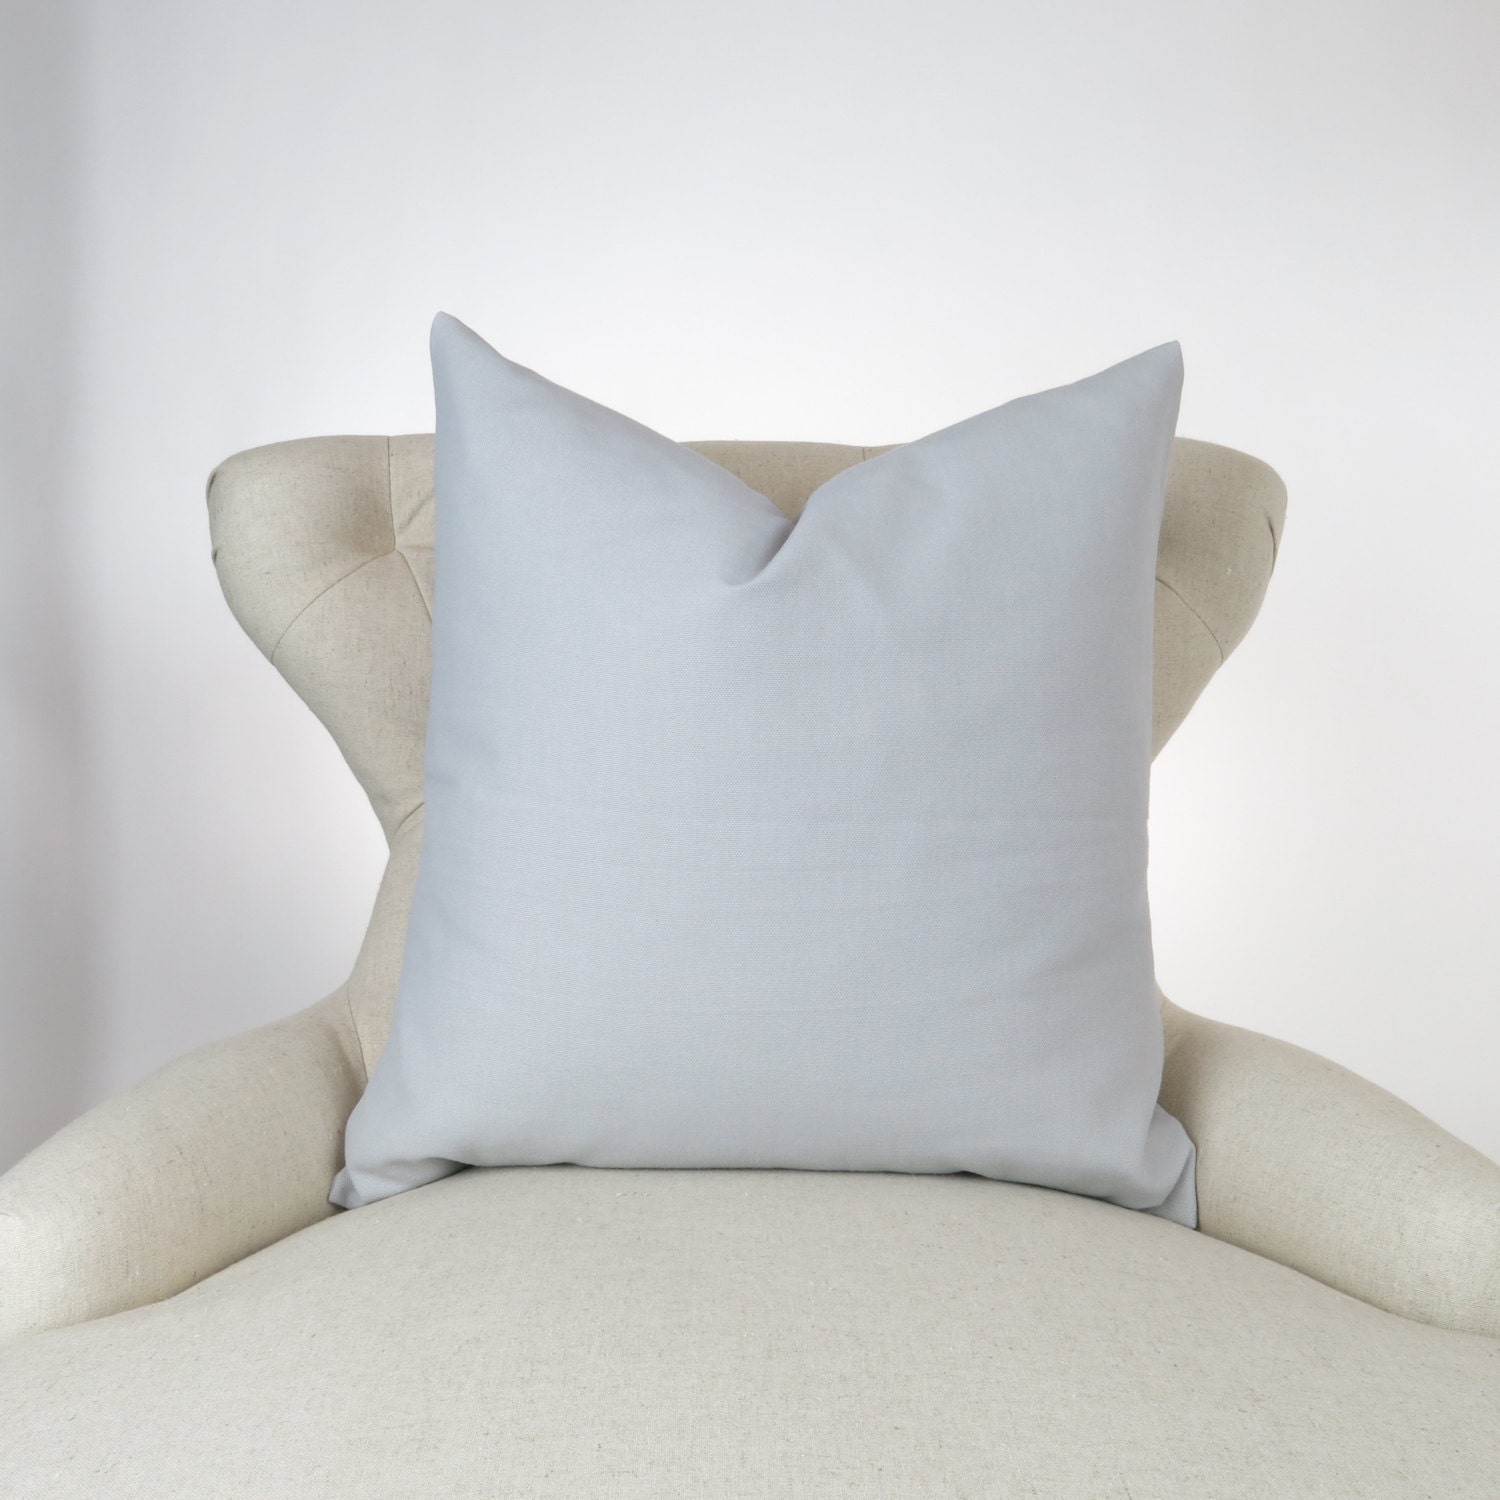 solid gray pillow cover big sizes euro sham floor cushion. Black Bedroom Furniture Sets. Home Design Ideas